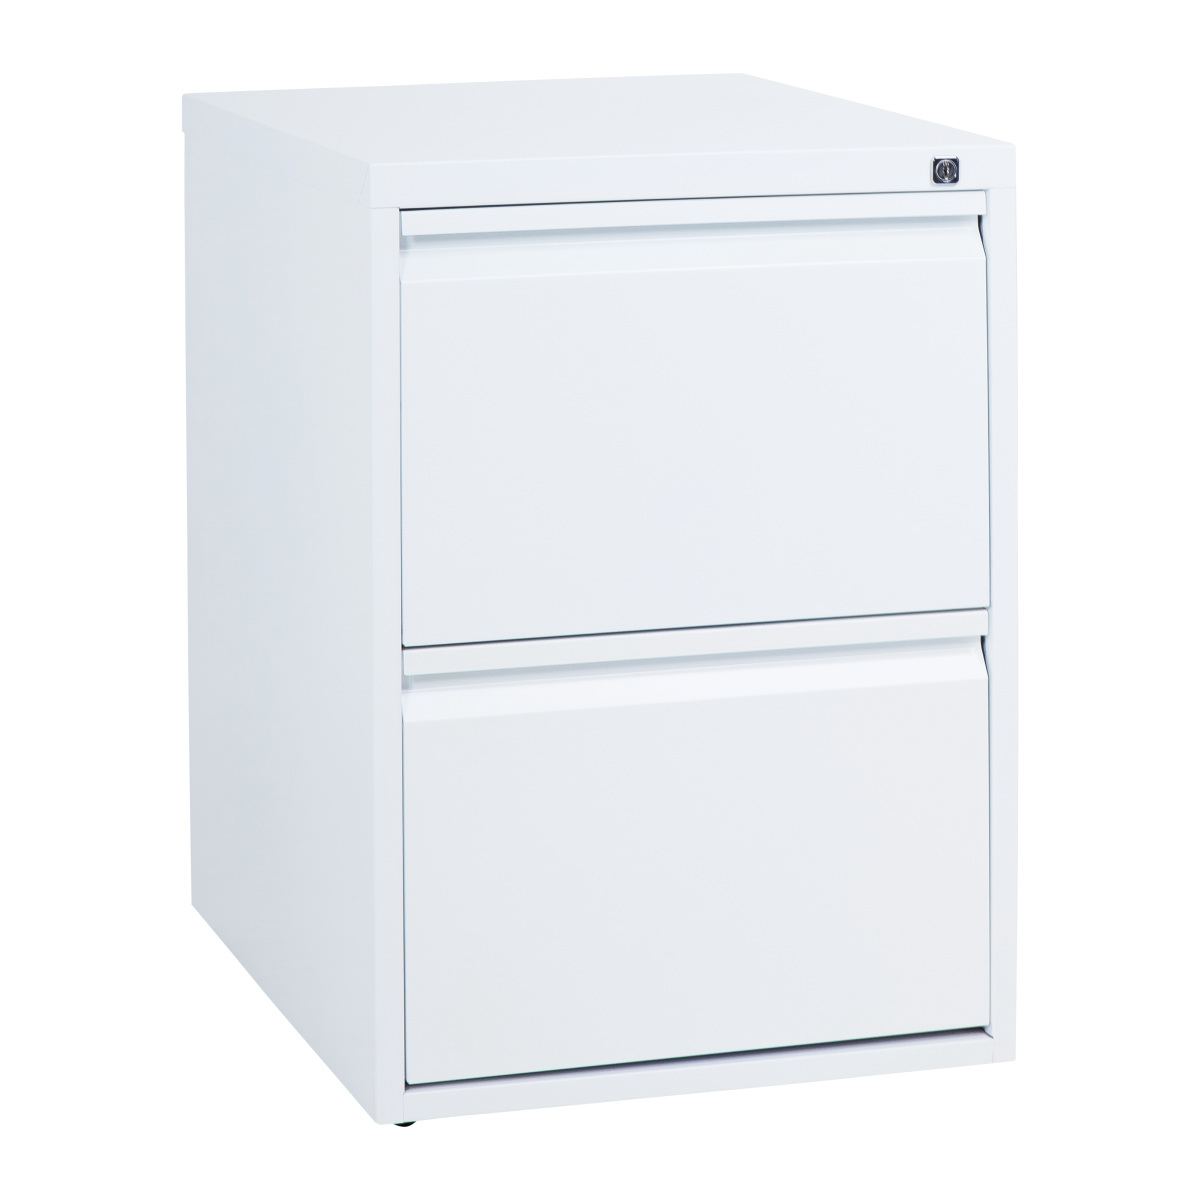 2 Drawer File Cabinet Statewide 2 Drawer Filing Cabinet Ideal Furniture